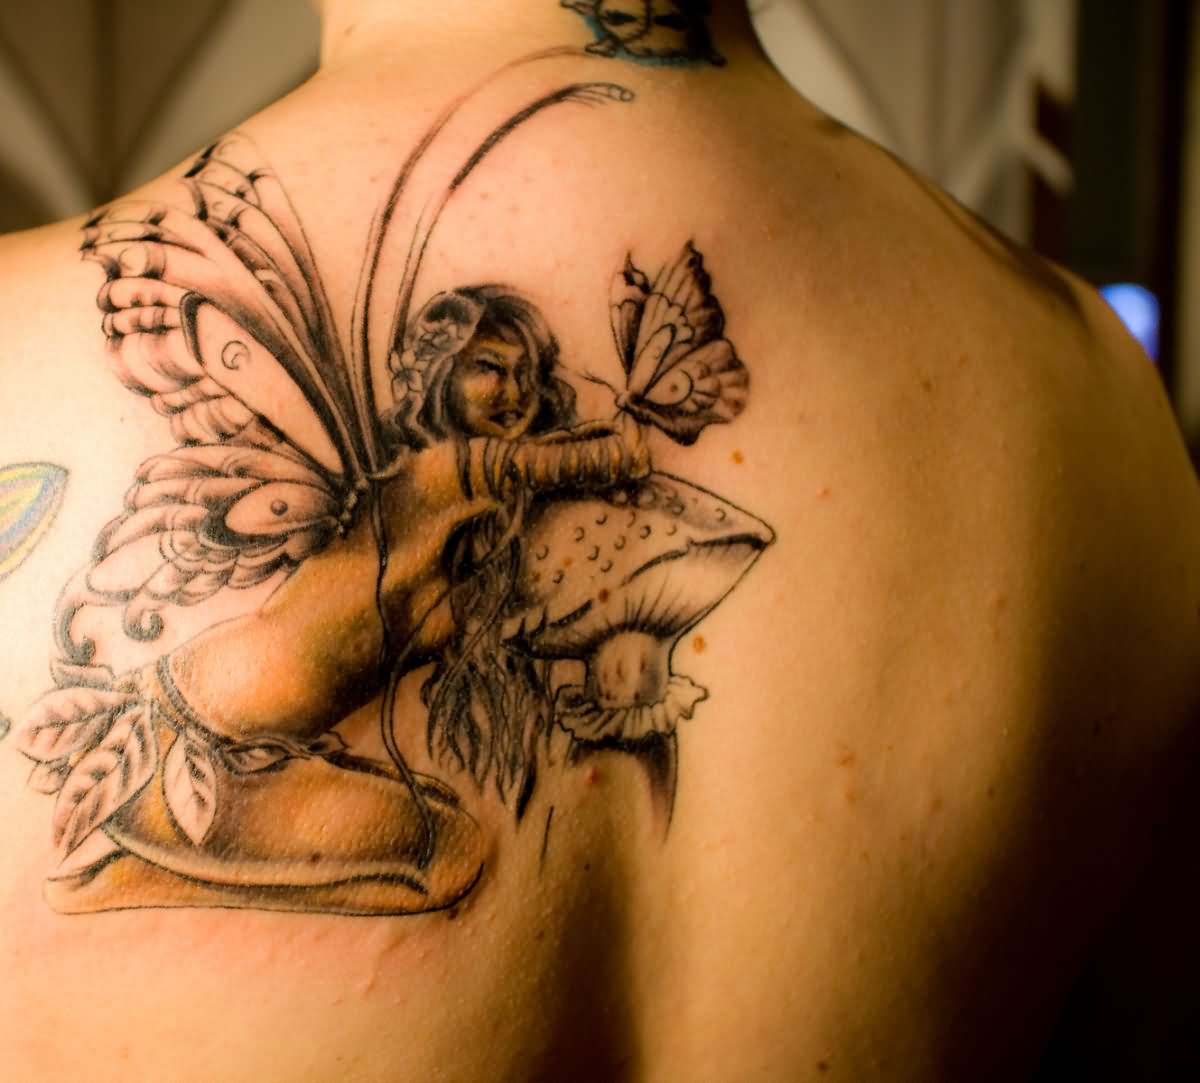 Classic Fairy With Mushroom And Butterfly Tattoo On Left Back Shoulder